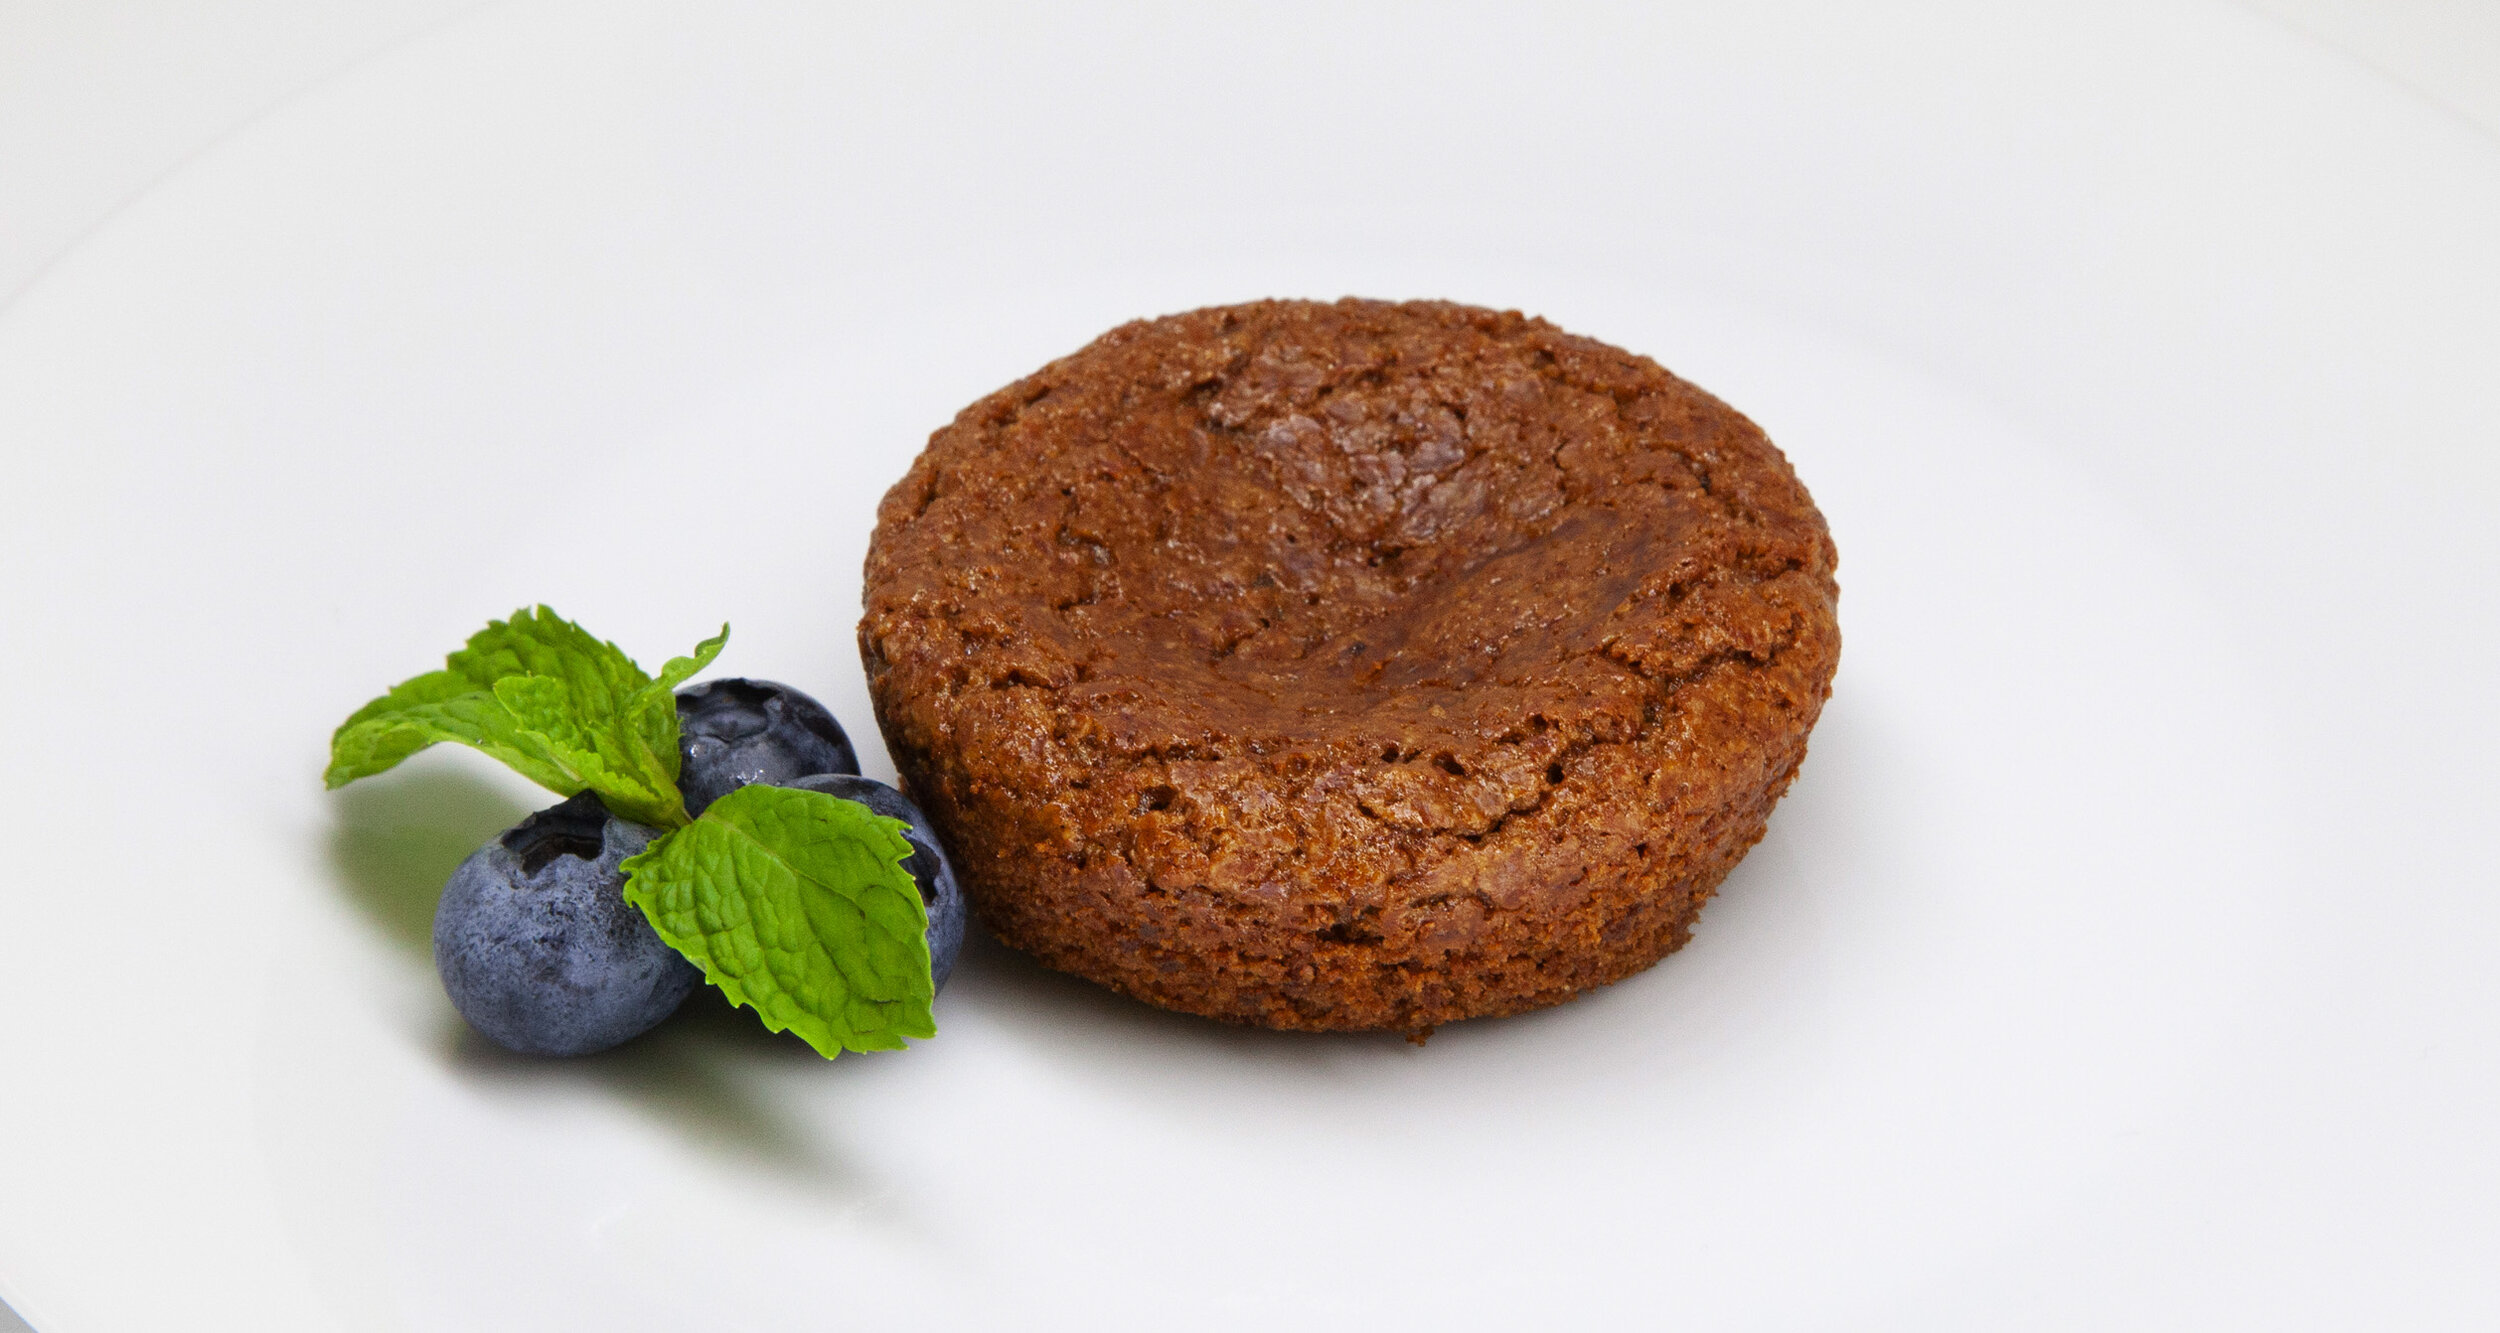 DOUBLE GINGER BROWNIE - 185 KCAL PER SERVINGOatmeal flour, brown sugar, ground ginger, baking soda, salt, candied ginger, raisins, canola oil, egg$12